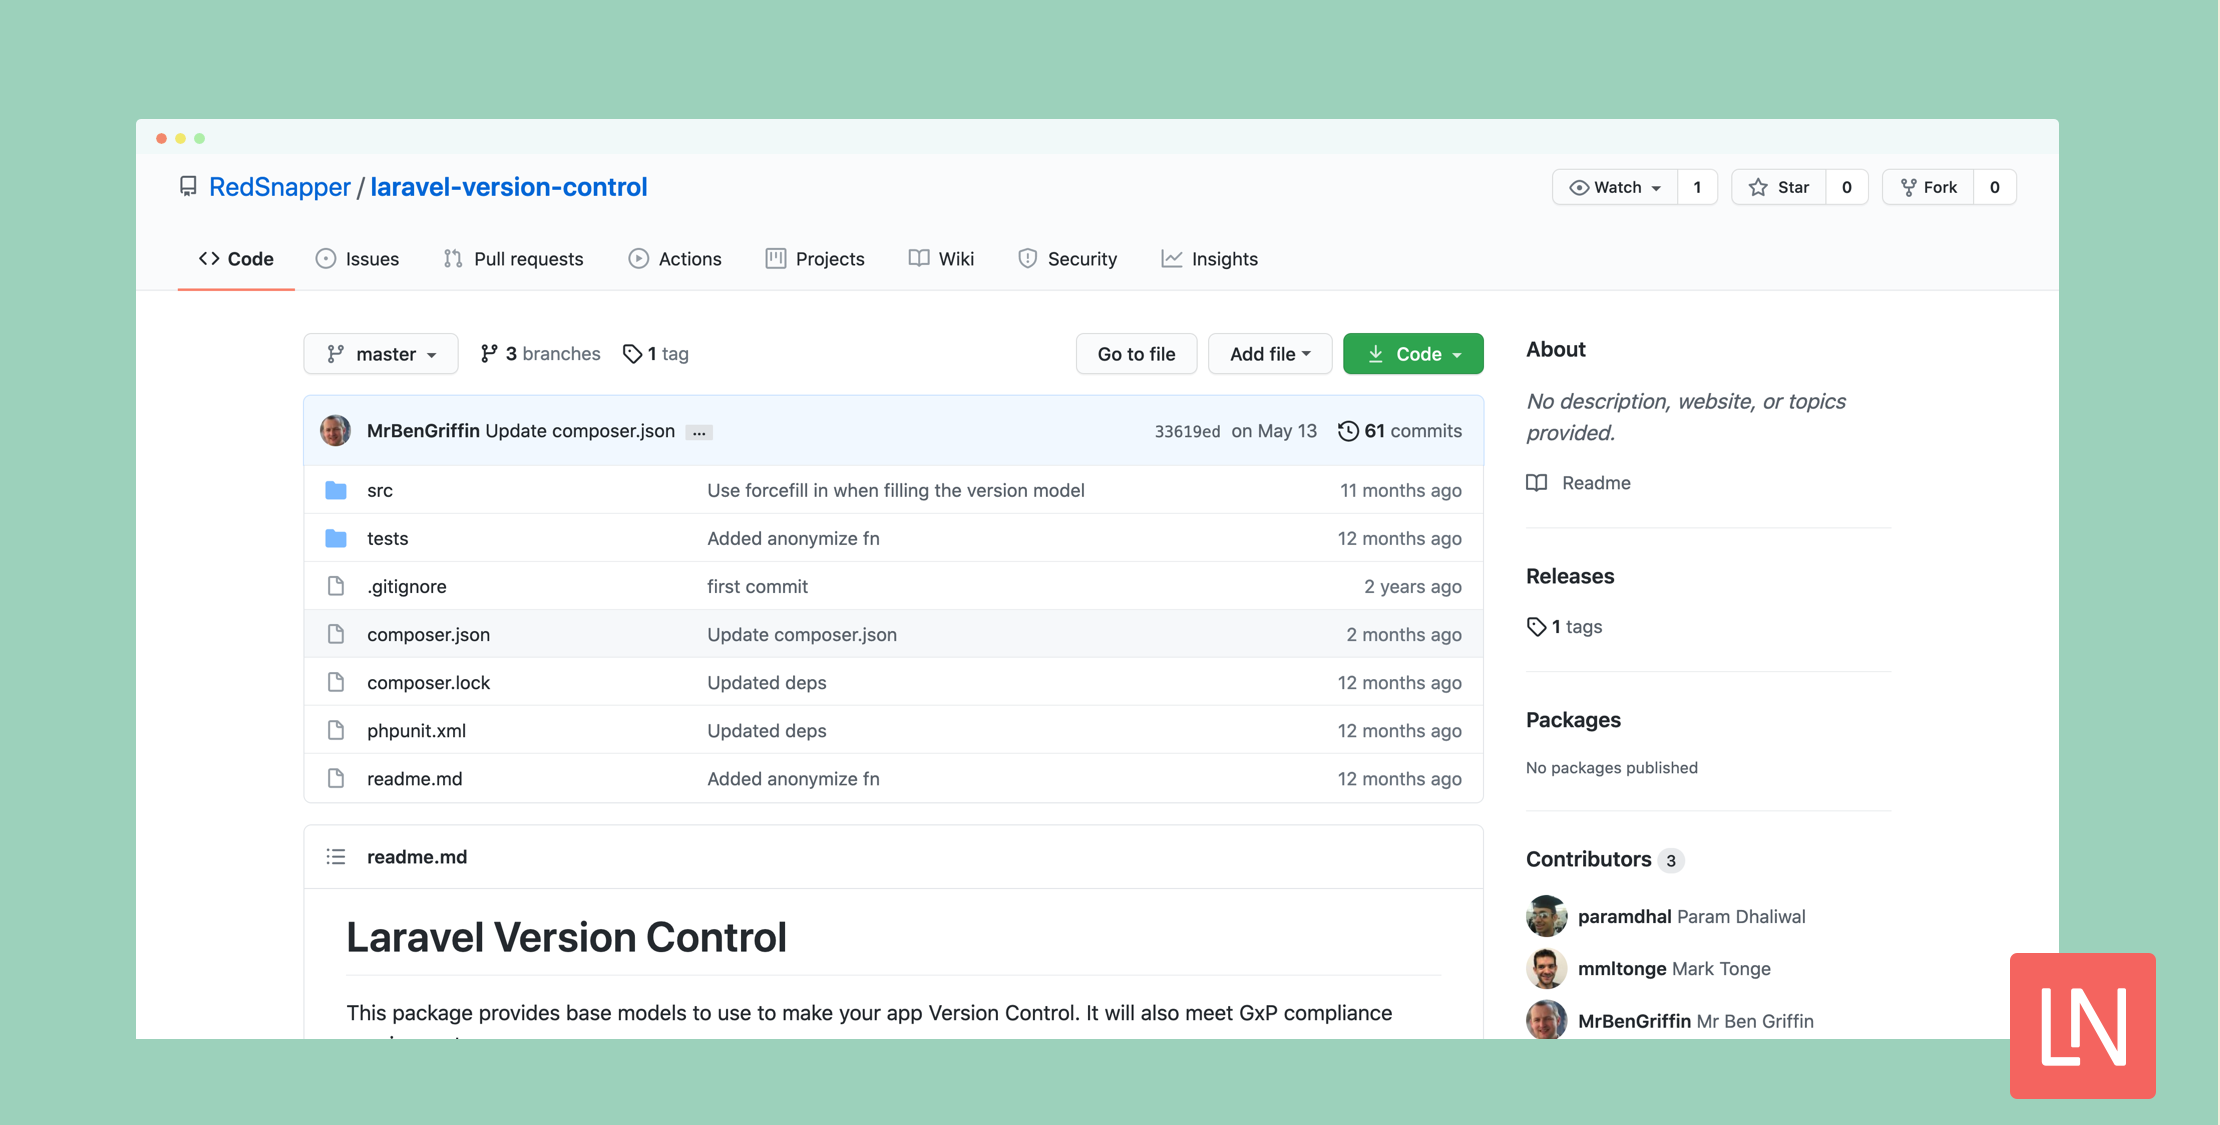 laravel-version-control-featured.png